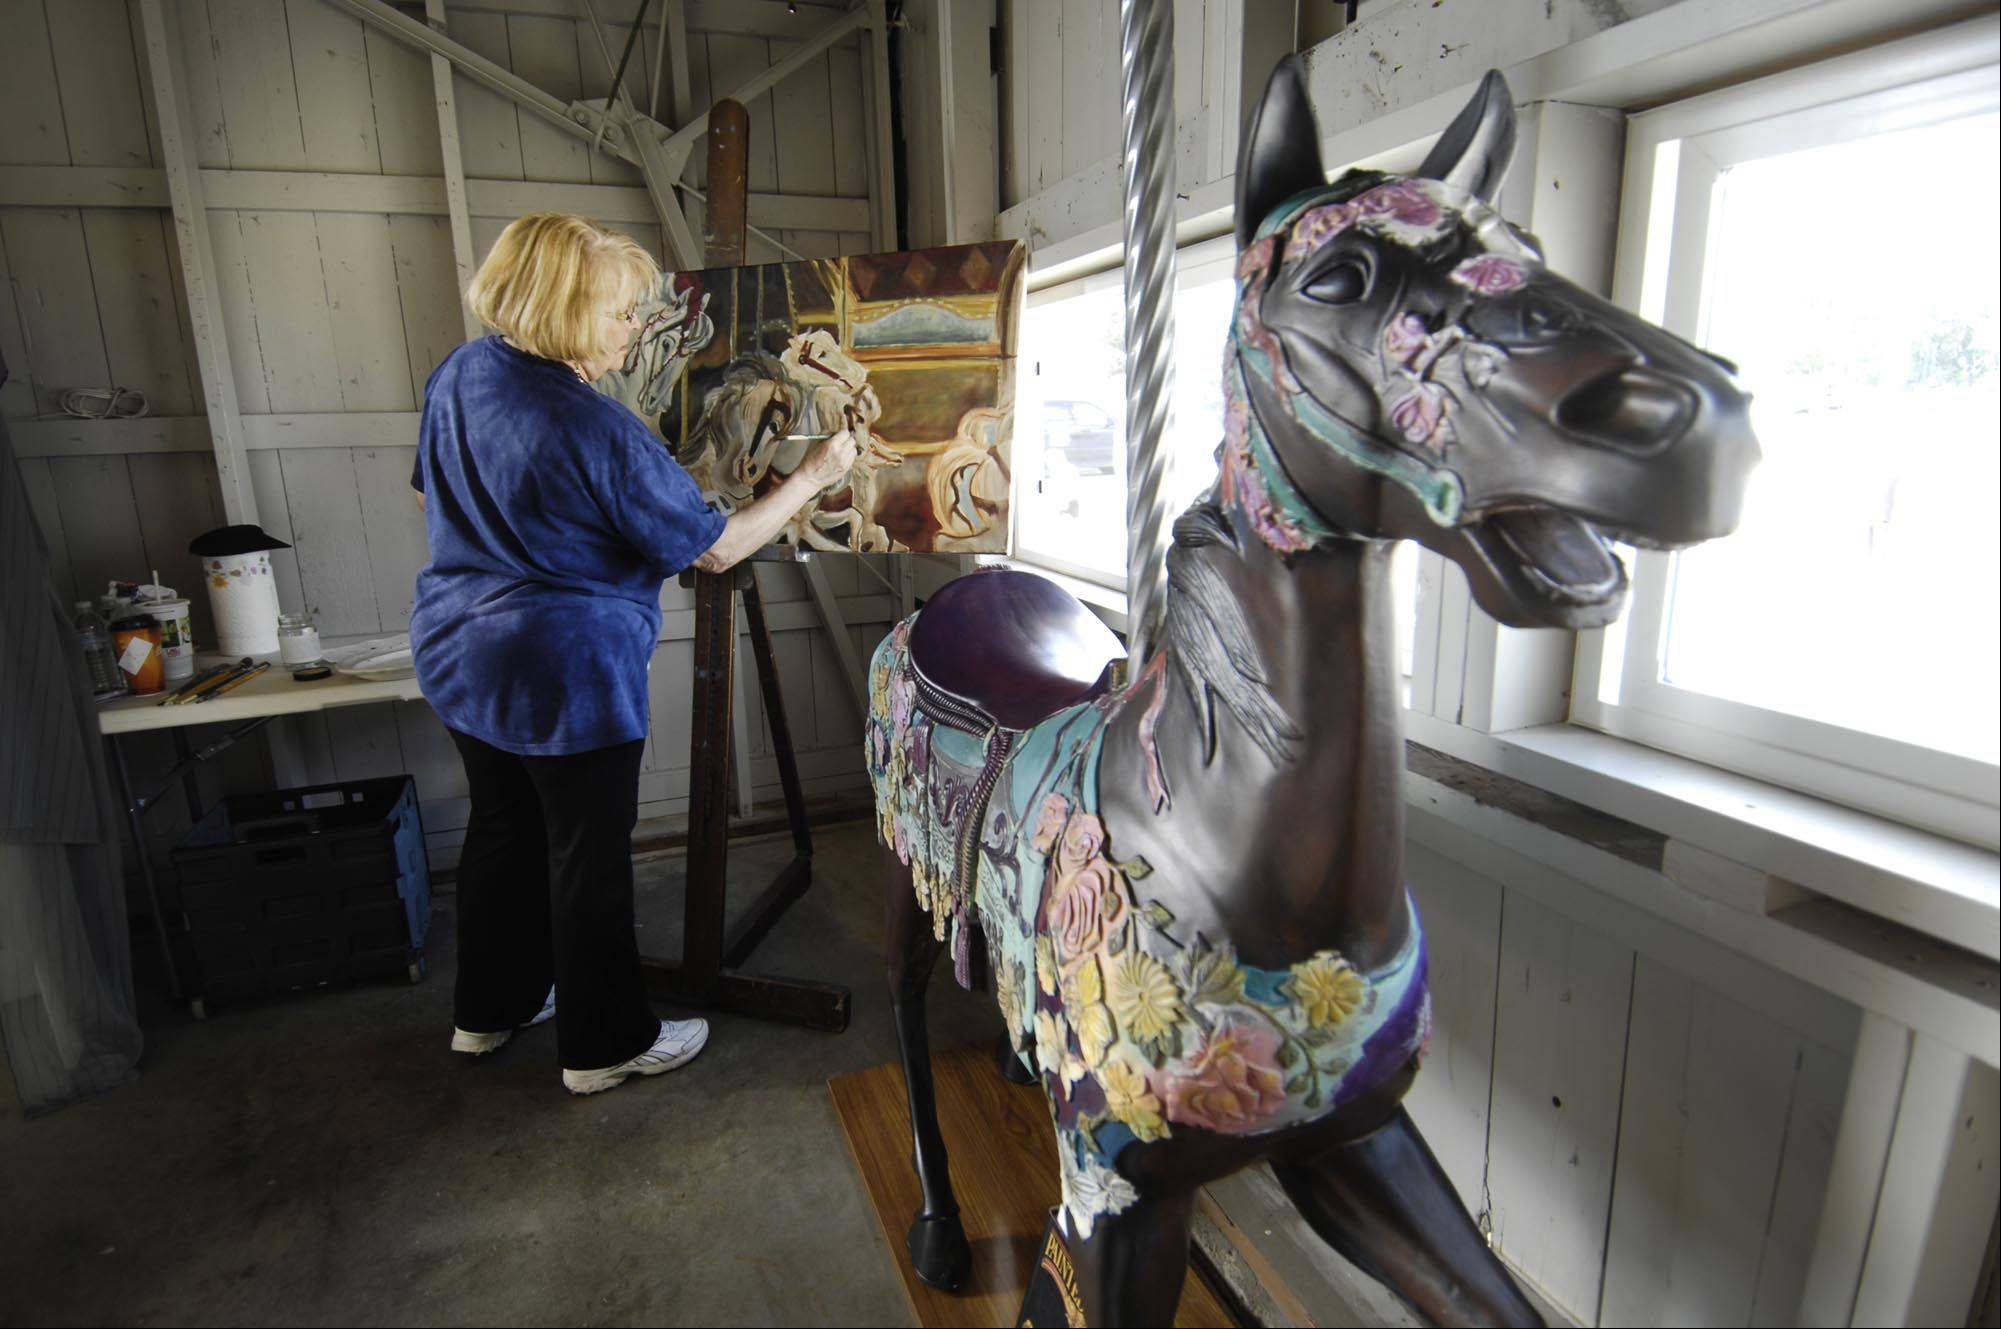 St. Charles artist Peggy Sue Seehafer paints with oil Sunday during The Festival of the Horse and Drum at the Kane County Fairgrounds. In the foreground is a carousel horse. She was one of several artists on display in a Next Gallery exhibit called �a horse of a different color� in one of the barns.